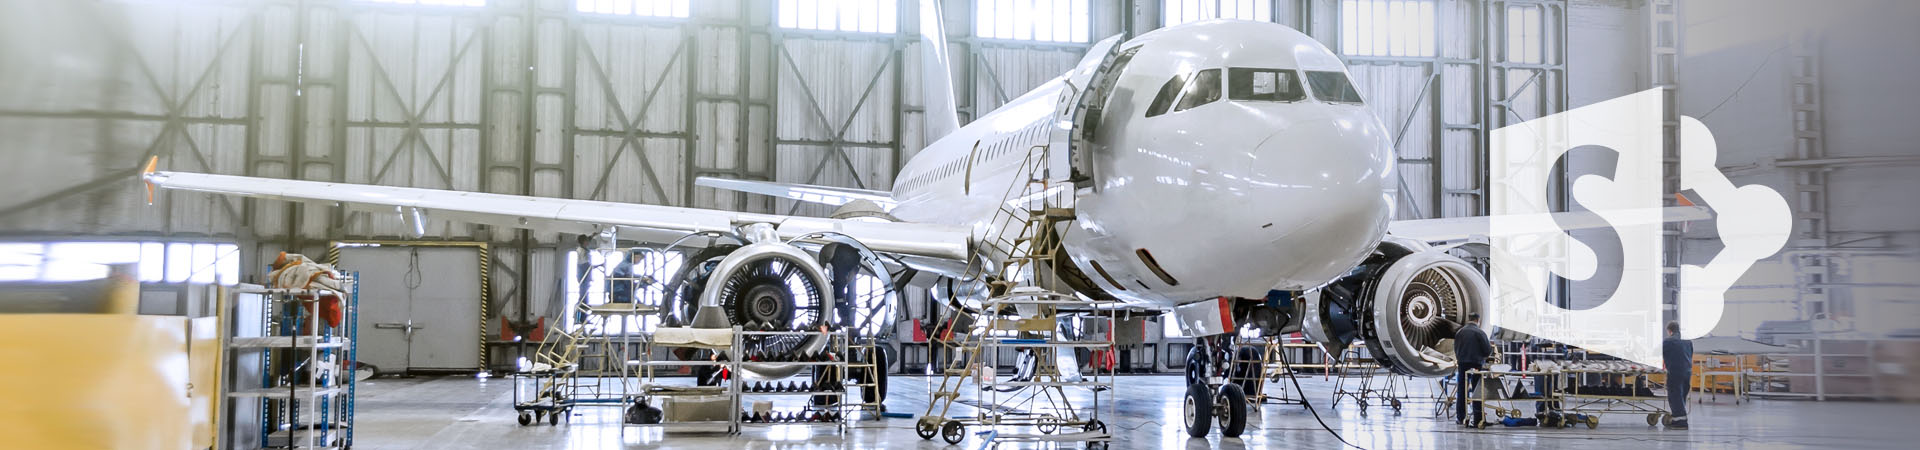 SharePoint Portal Migration for an Aircraft Maintenance Company